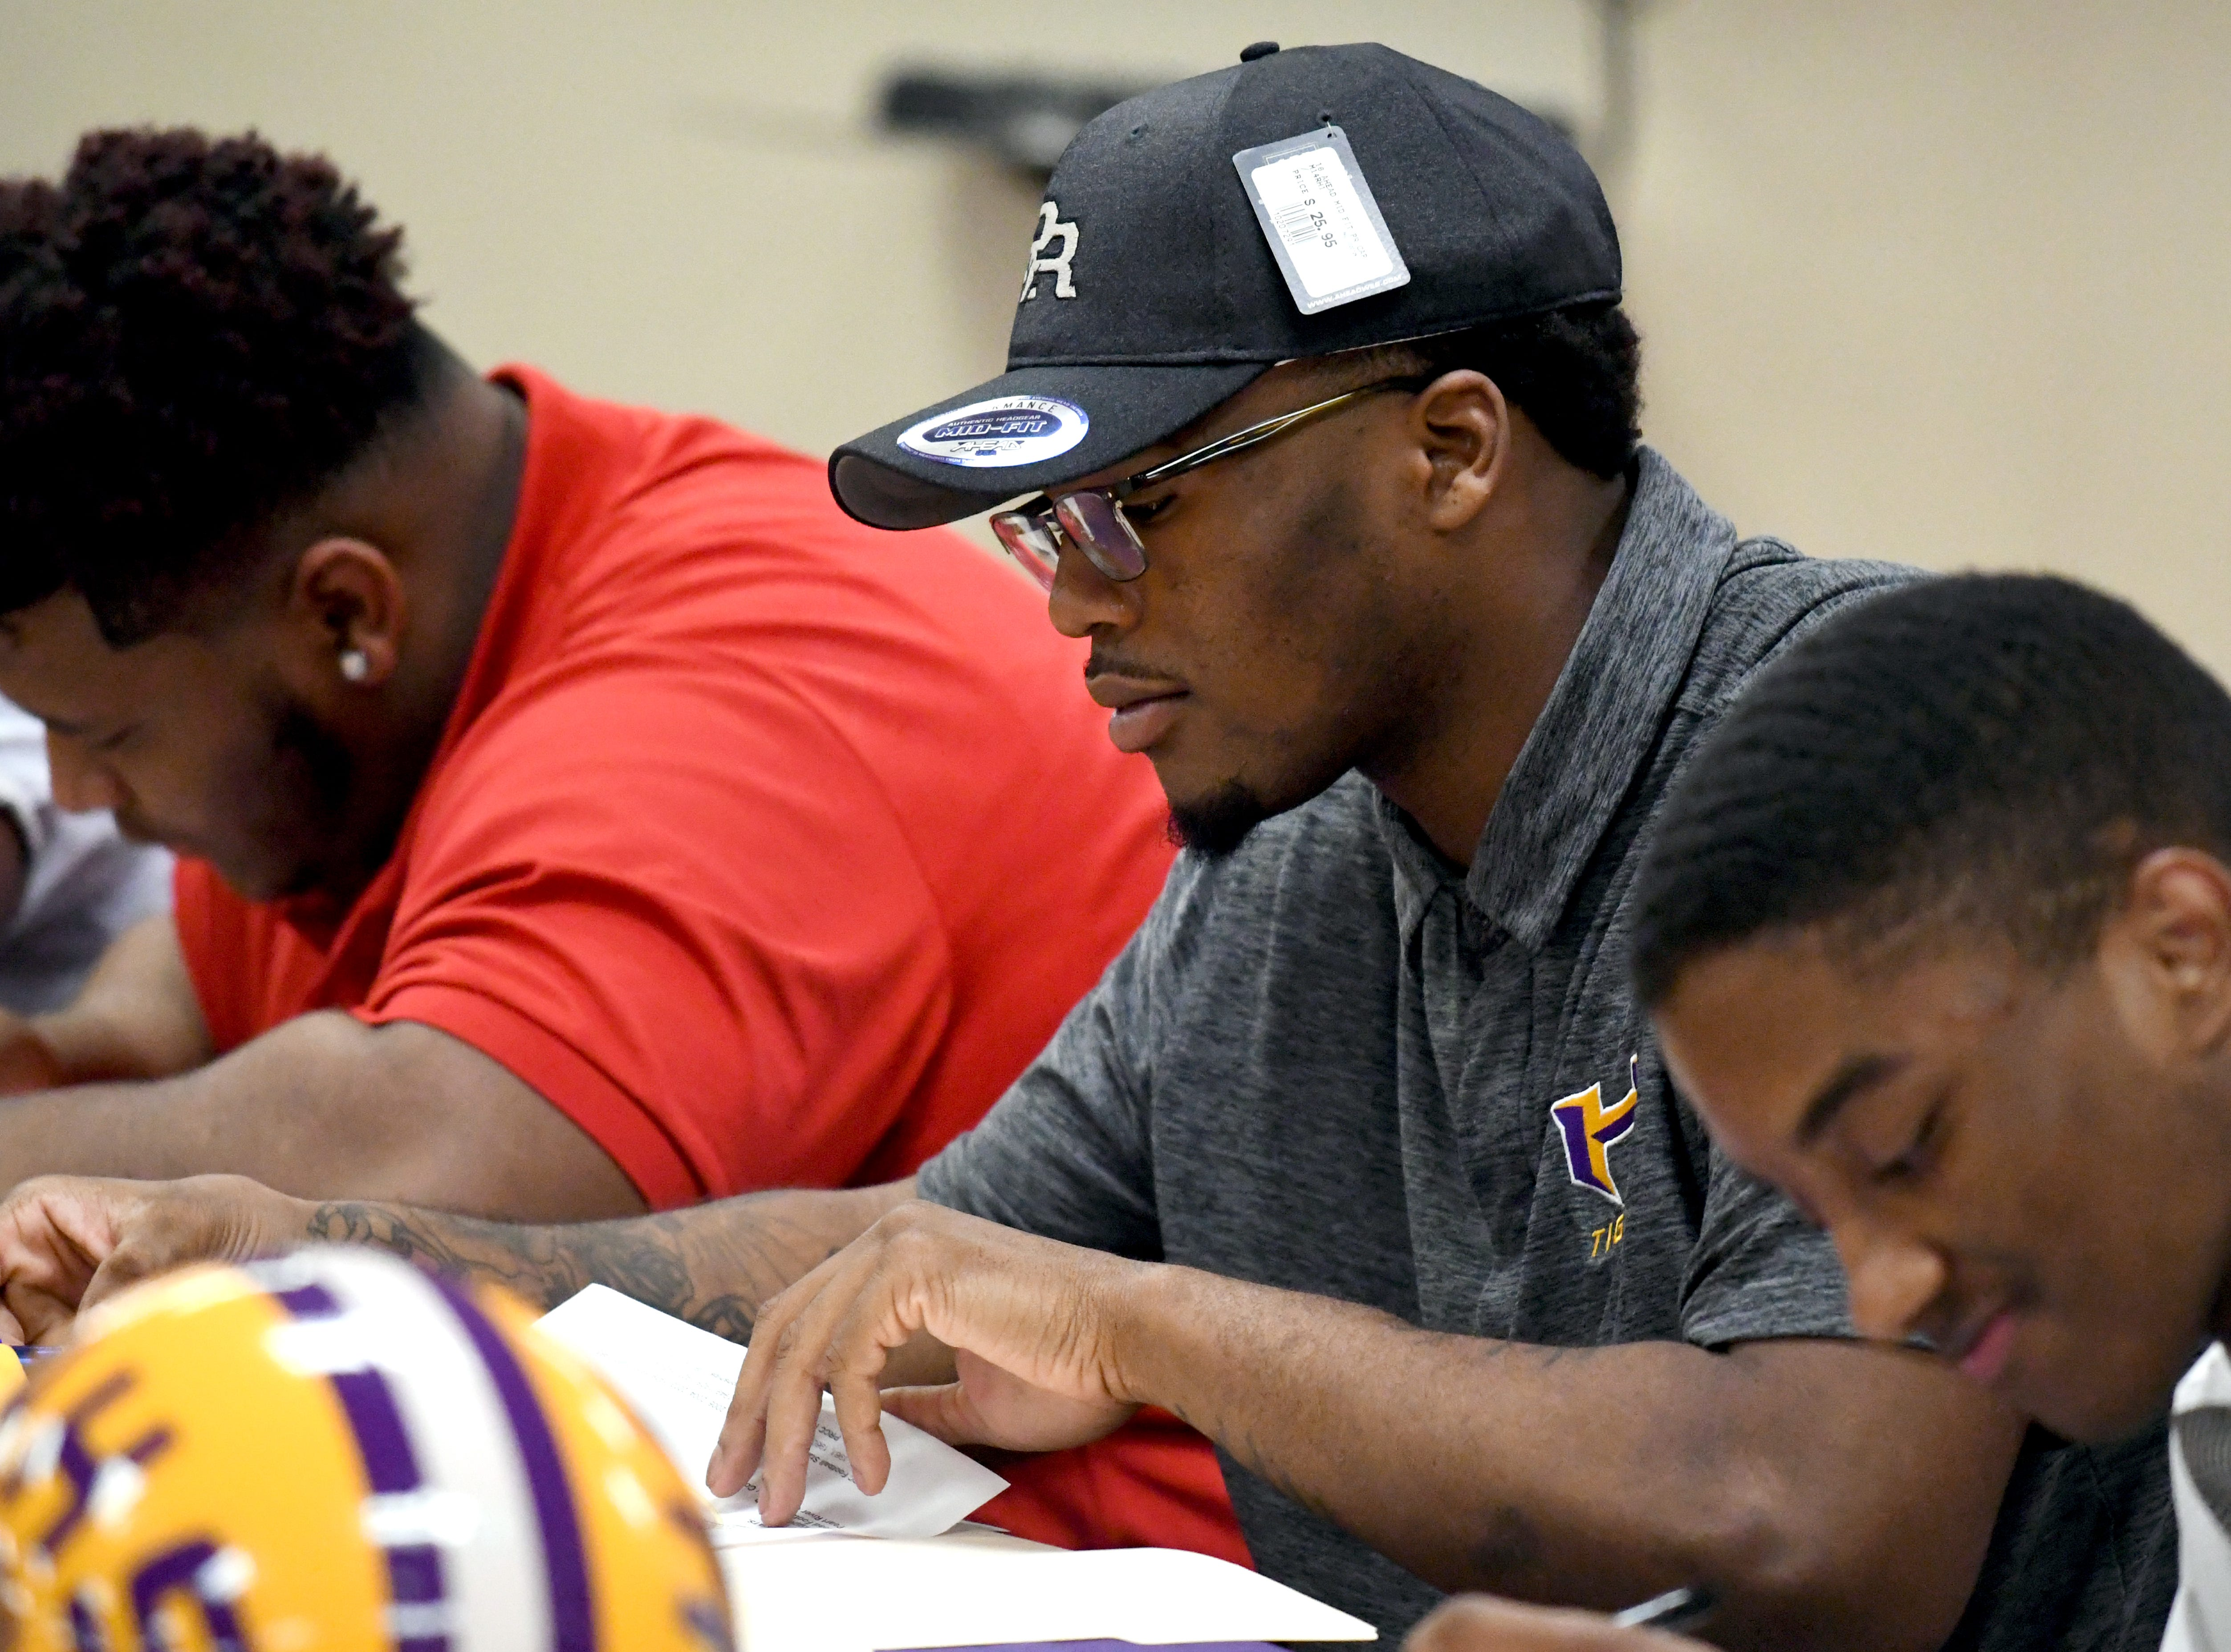 Hattiesburg High senior Christian Turner signed with Pearl River Community College during National Signing Day in Hattiesburg on Wednesday, February 6, 2019.